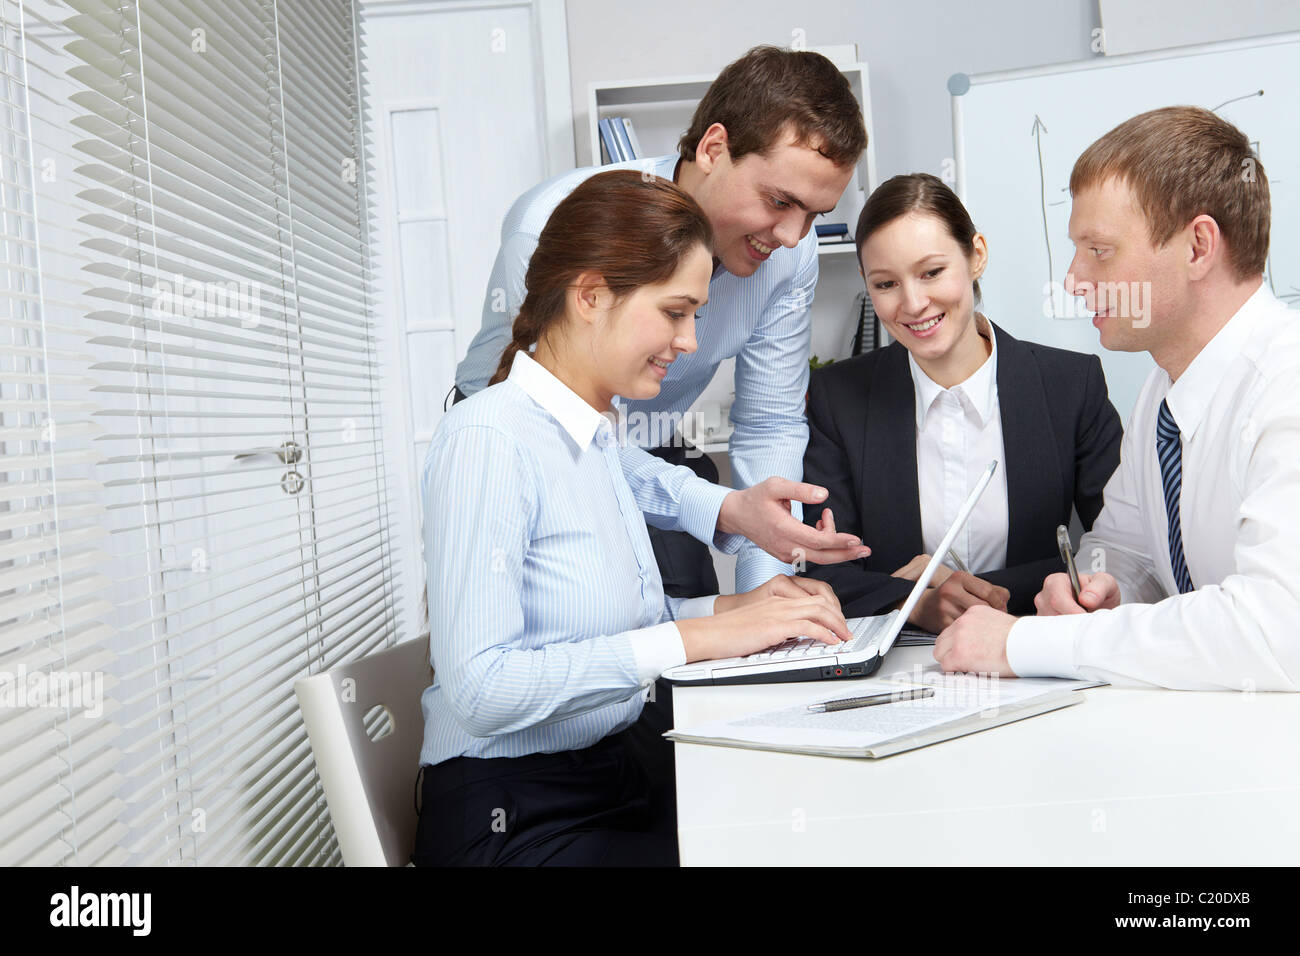 Four business people making their everyday work - Stock Image